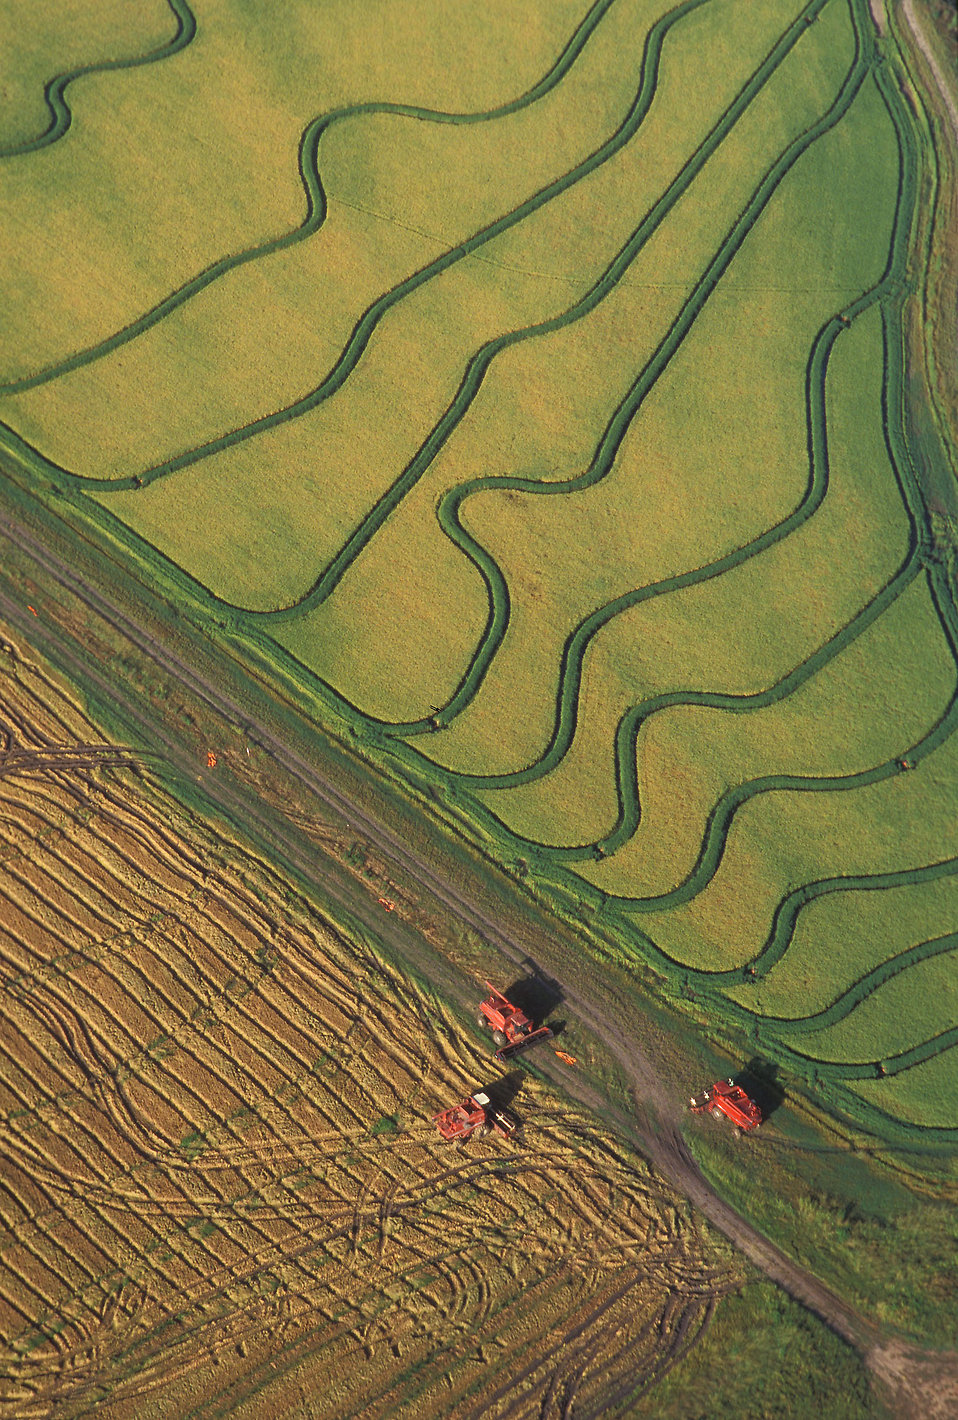 Aerial view of rice harvesting on a farm : Free Stock Photo